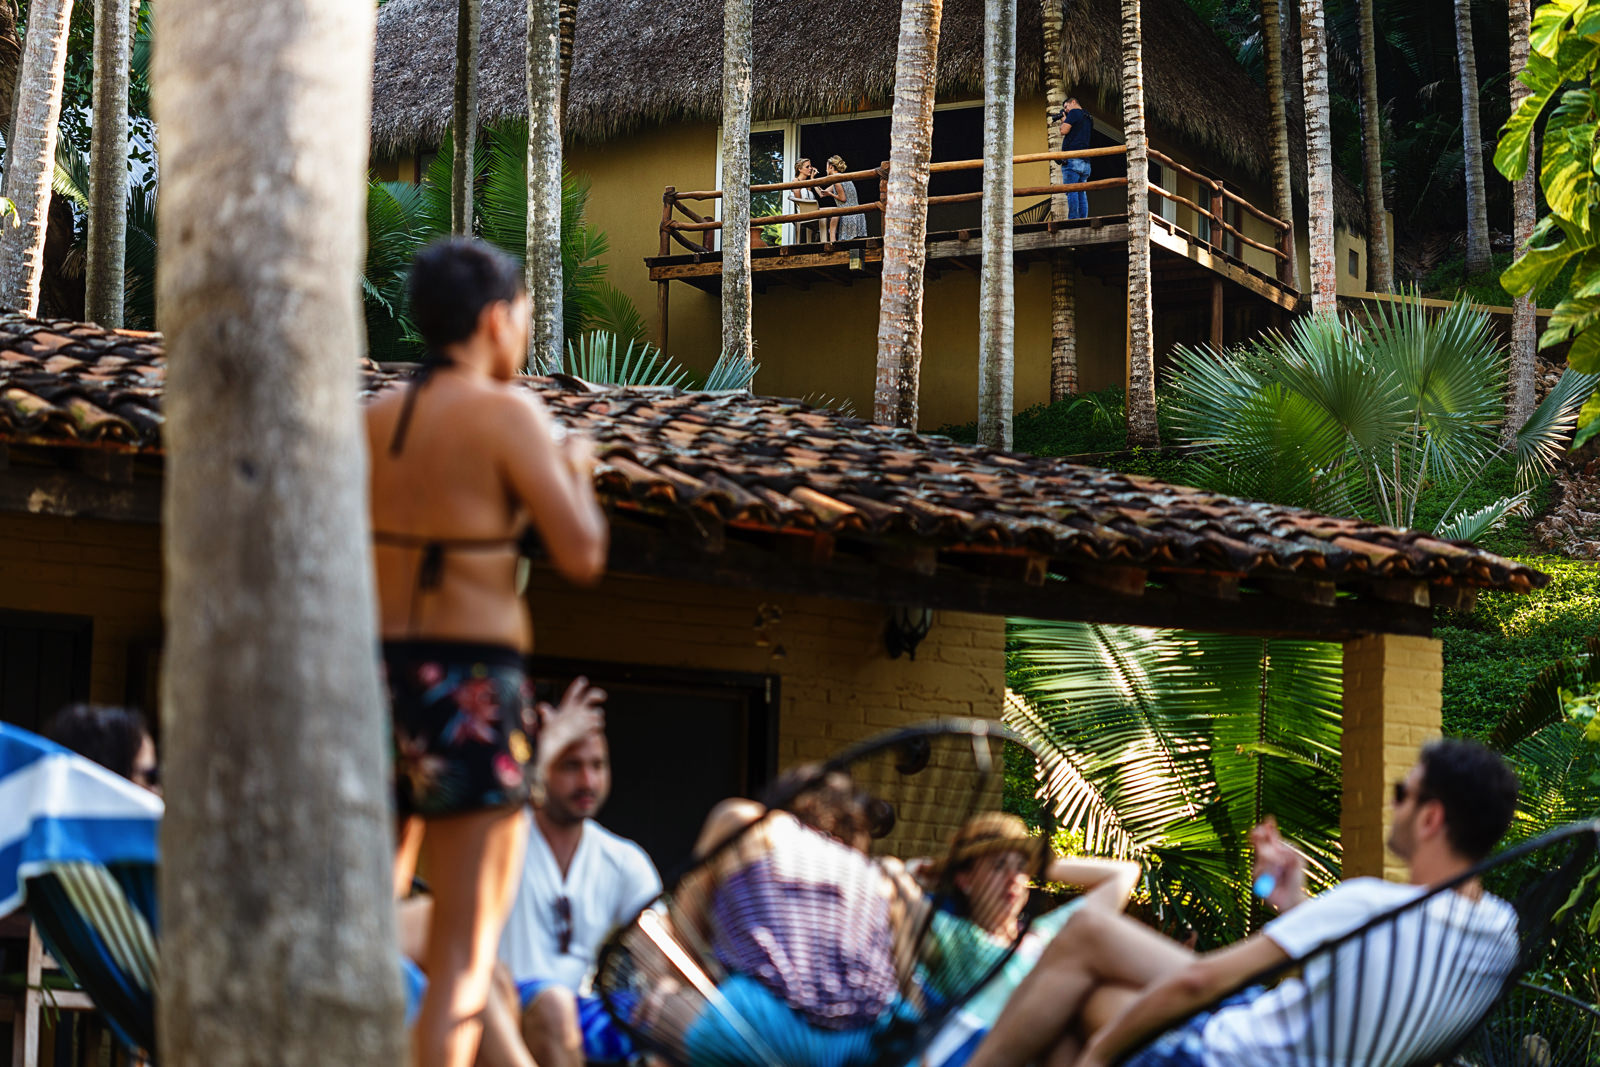 View of the bride getting her make-up at the balcony of the yoga room,from the main garden in Punta Monterrey